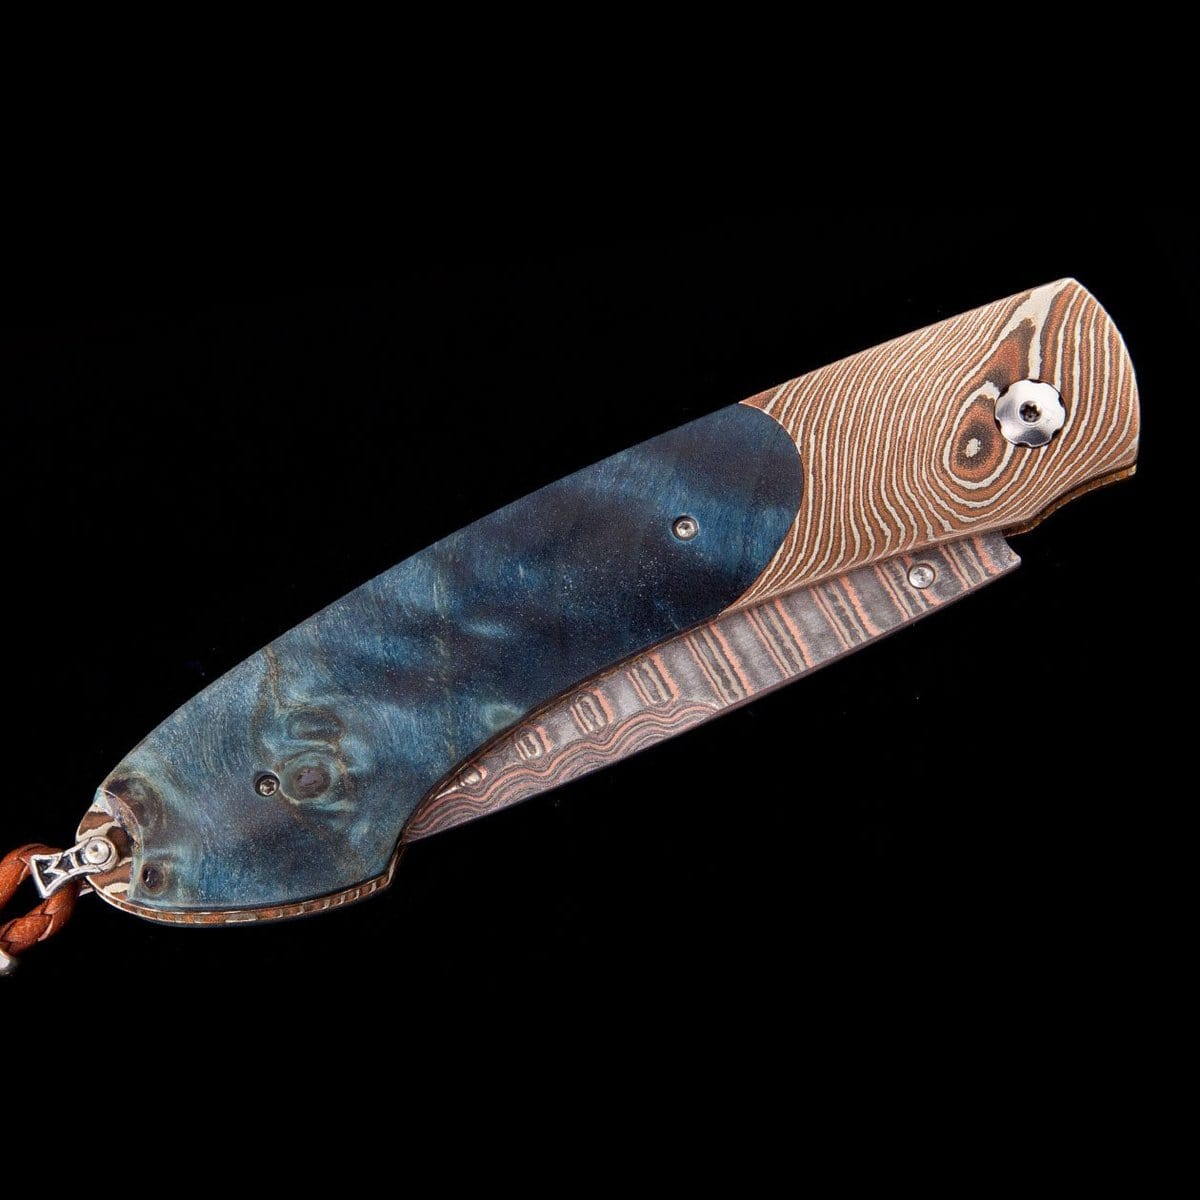 Spearpoint Harvest Limited Edition Knife - B12 HARVEST-William Henry-Renee Taylor Gallery